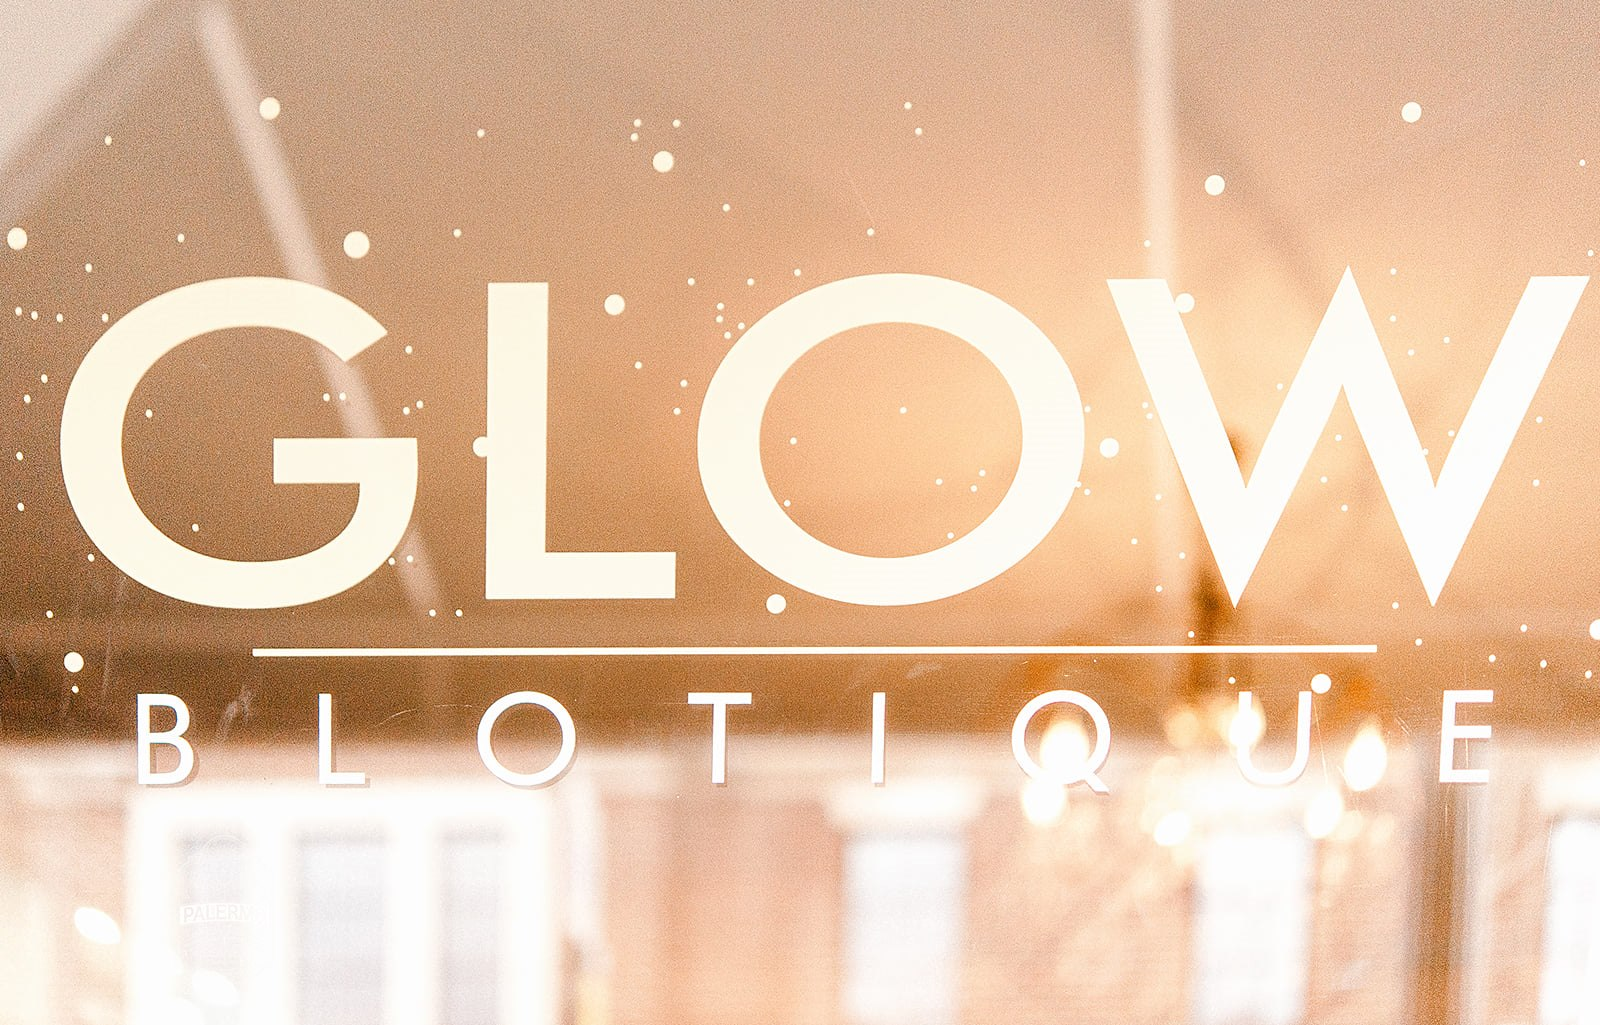 Blowouts, Bubbly & Brunch Spa Day Bridal Shower Inspiration at Glow Blotique  (28).jpg